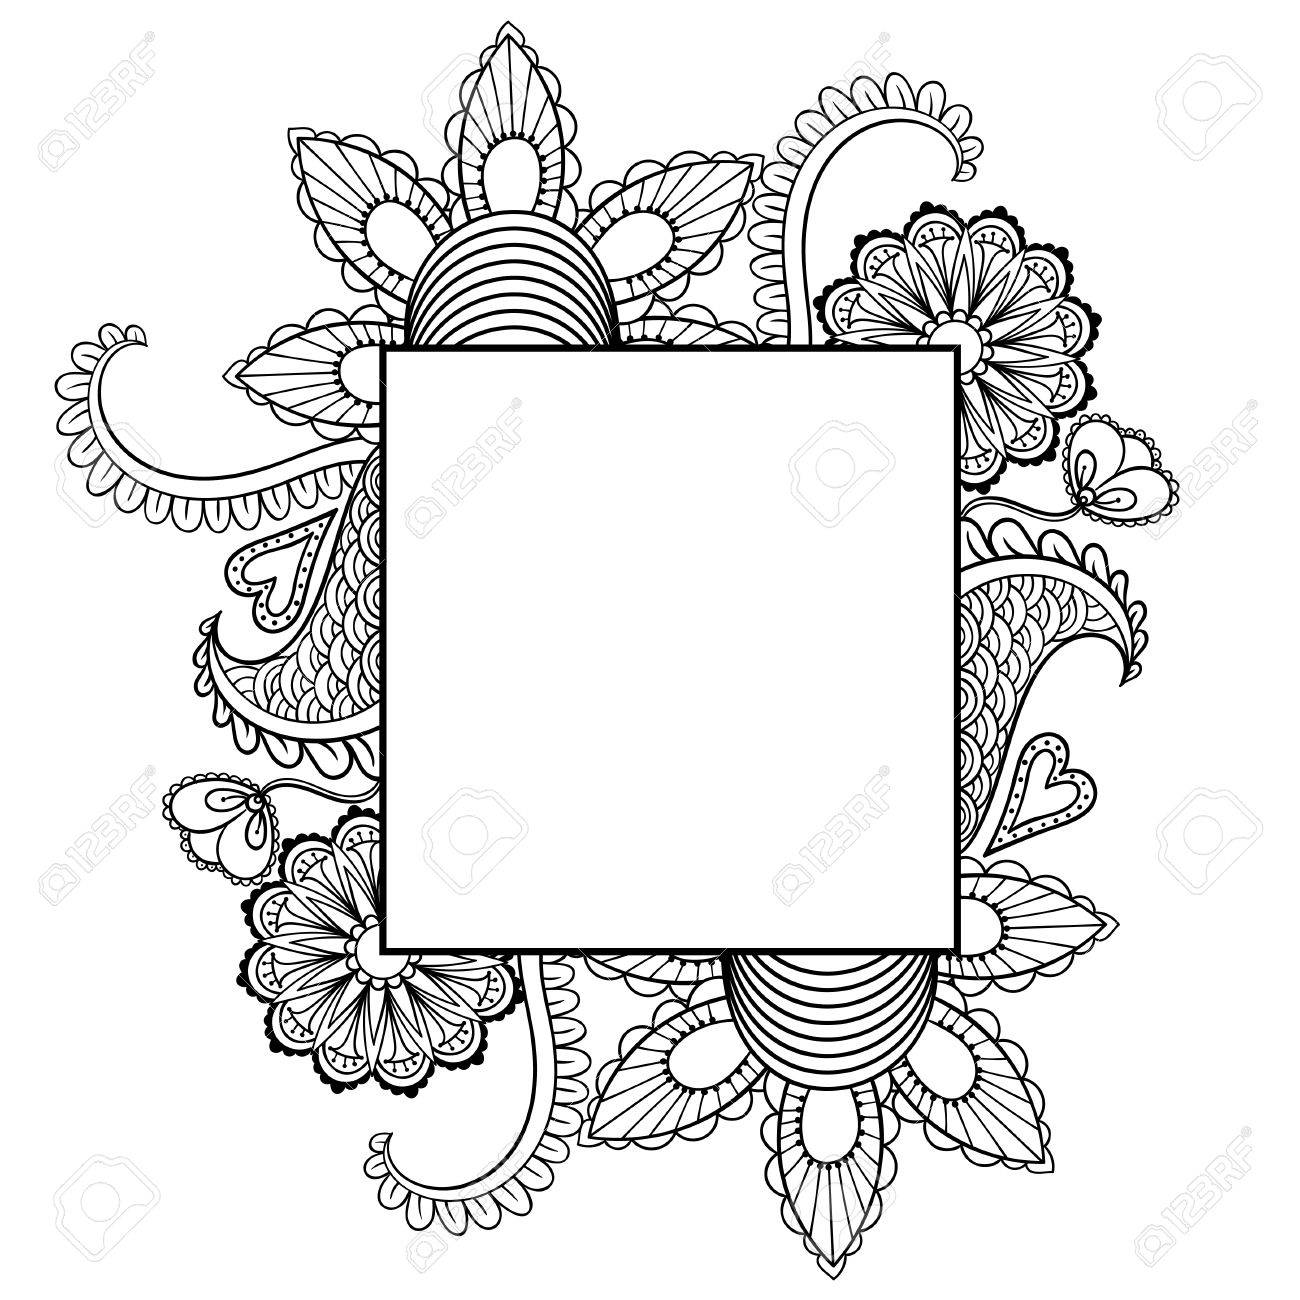 Hand Drawn Artistically Ethnic Ornamental Patterned Floral Frame For St Valentines Day In Doodle